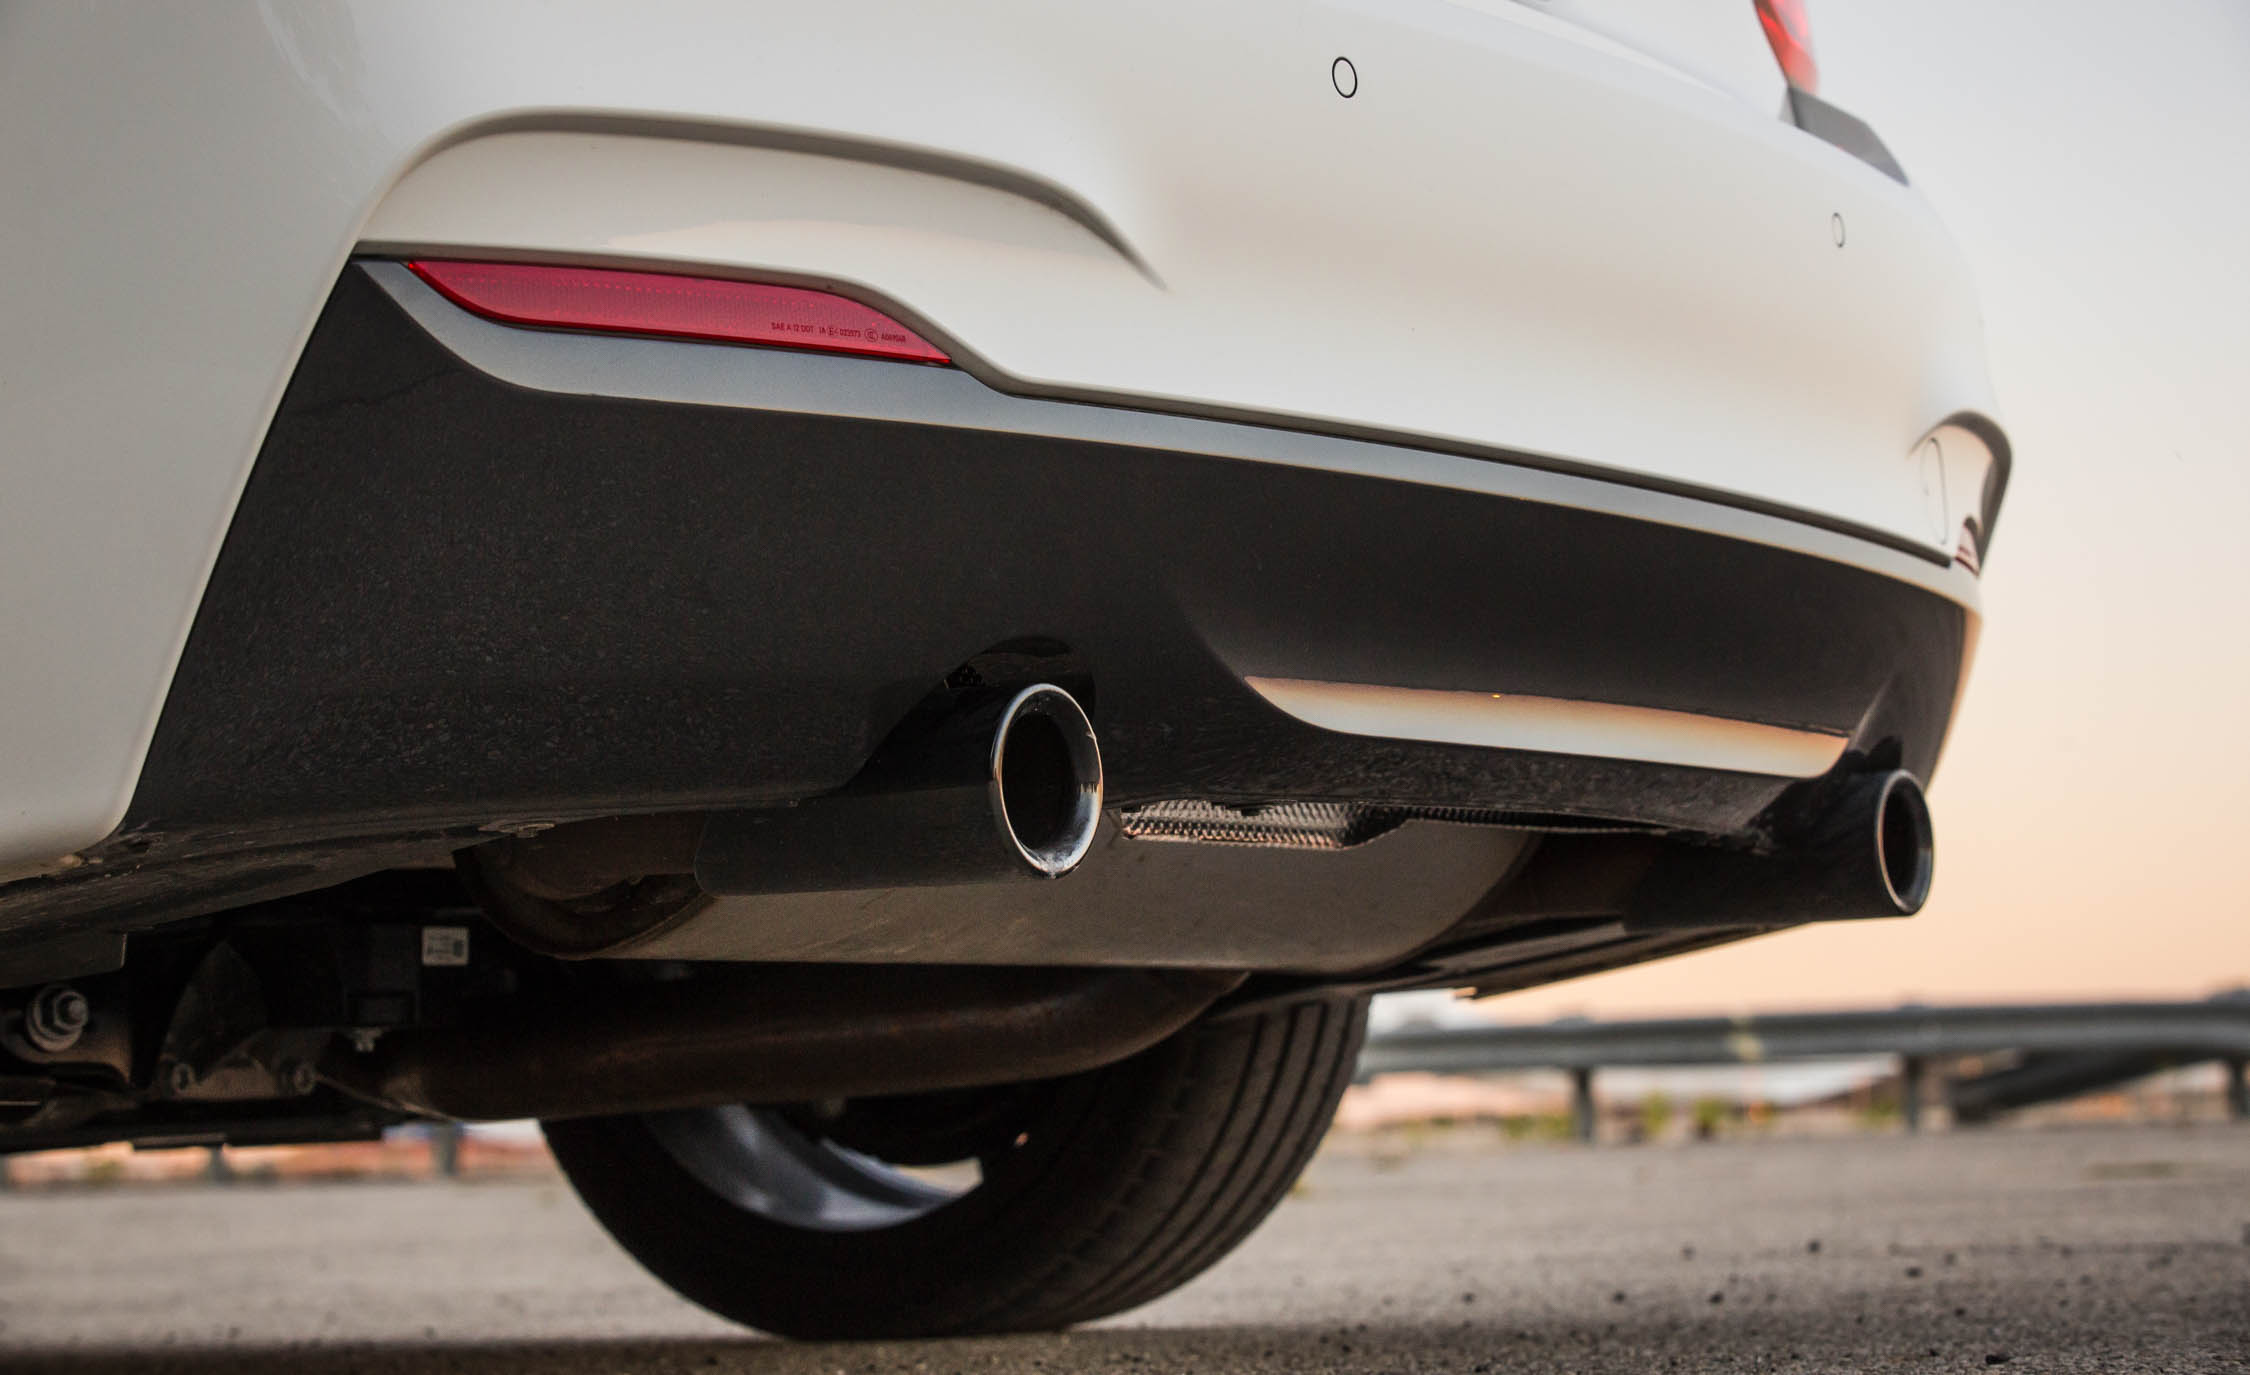 2017 BMW M240i Coupe Automatic Exterior View Rear Bumper And Exhaust Pipe (Photo 14 of 36)